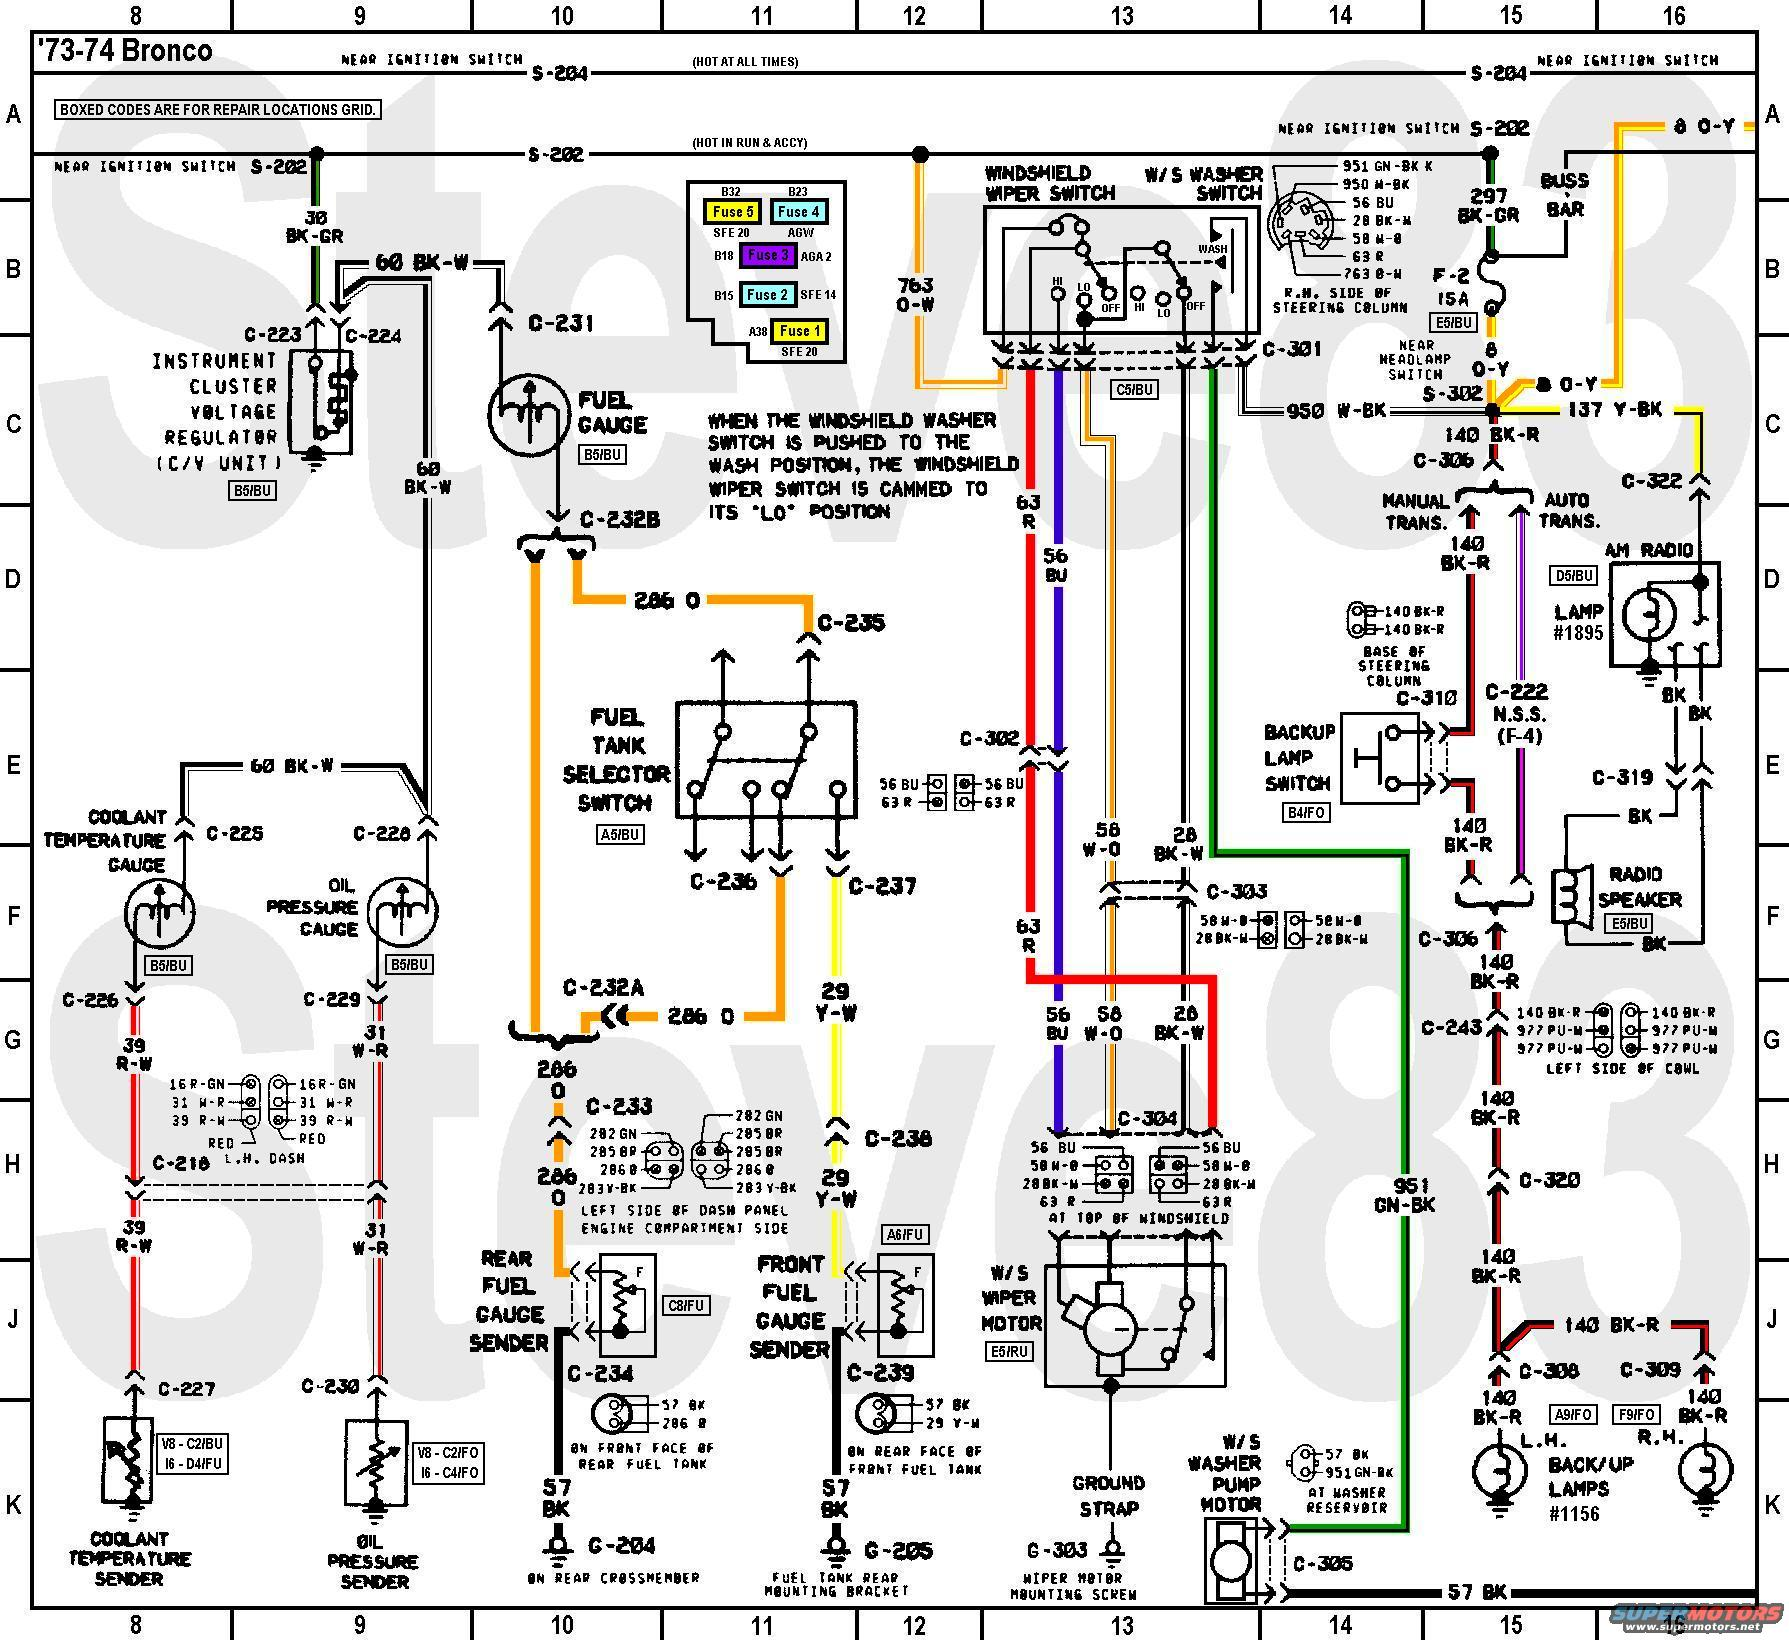 79 Trans Am Wiring Diagram   pores co furthermore  in addition Trans Am Wiring Diagram   Online Schematic Diagram • as well 1976 Trans Am Wiring Diagram   WIRE Center • furthermore Sale Also Ammeter Gauge Wiring Diagram On 79 Trans Am Wiring Diagram further  besides Vats Wiring Diagram   Wiring Diagrams also AustinThirdGen Org as well Camaro Wiring   Electrical Information further  further Firebird Trans Am Wiring Diagram Also 1979 Trans Am Wiring Diagram further Basic Wiring Harnesses for 1977 81 Trans Ams further Awesome Trans Am Wiring Diagram Festooning   Electrical System Block besides Trans Am Wire Harness Diagram   Wiring furthermore 1977 Trans Am Wiring Diagram Radio   Wiring Diagram • furthermore 79 Trans Am Wiring Diagram Headlight Wiring Diagram Third Generation. on 79 trans am wiring diagram